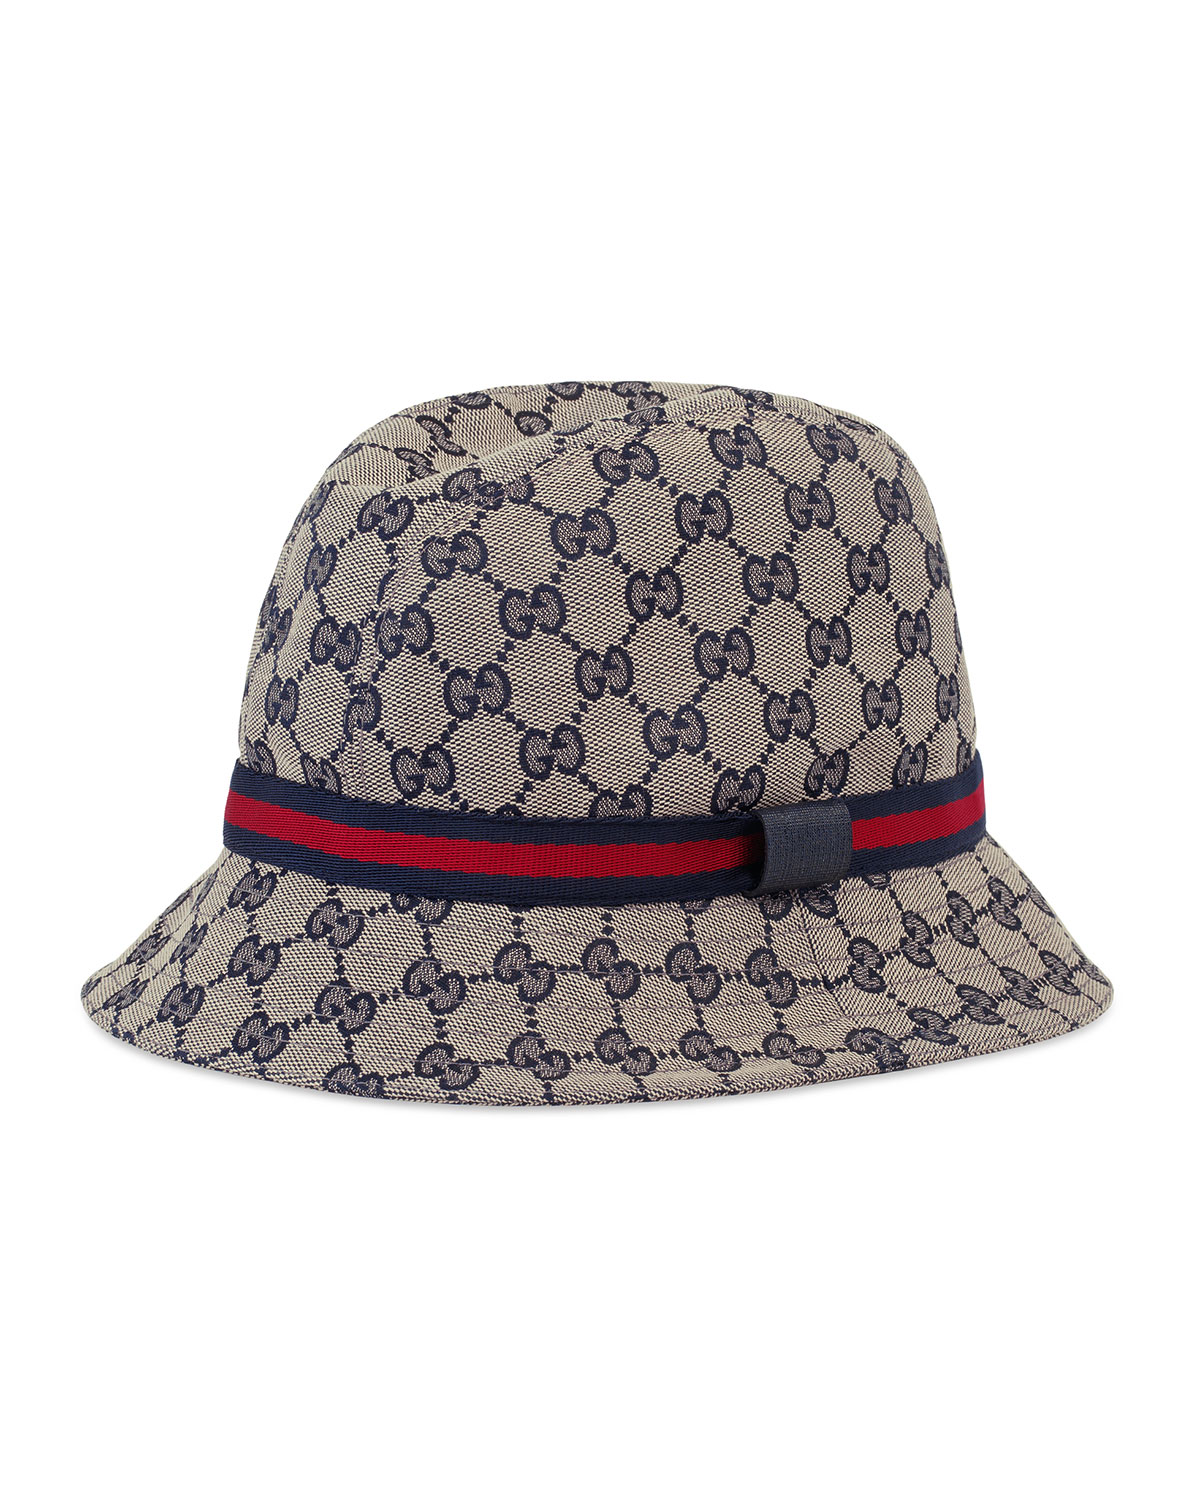 Gucci Kids Gg Supreme Canvas Bucket Hat W Band Neiman Marcus 5805c52ed41